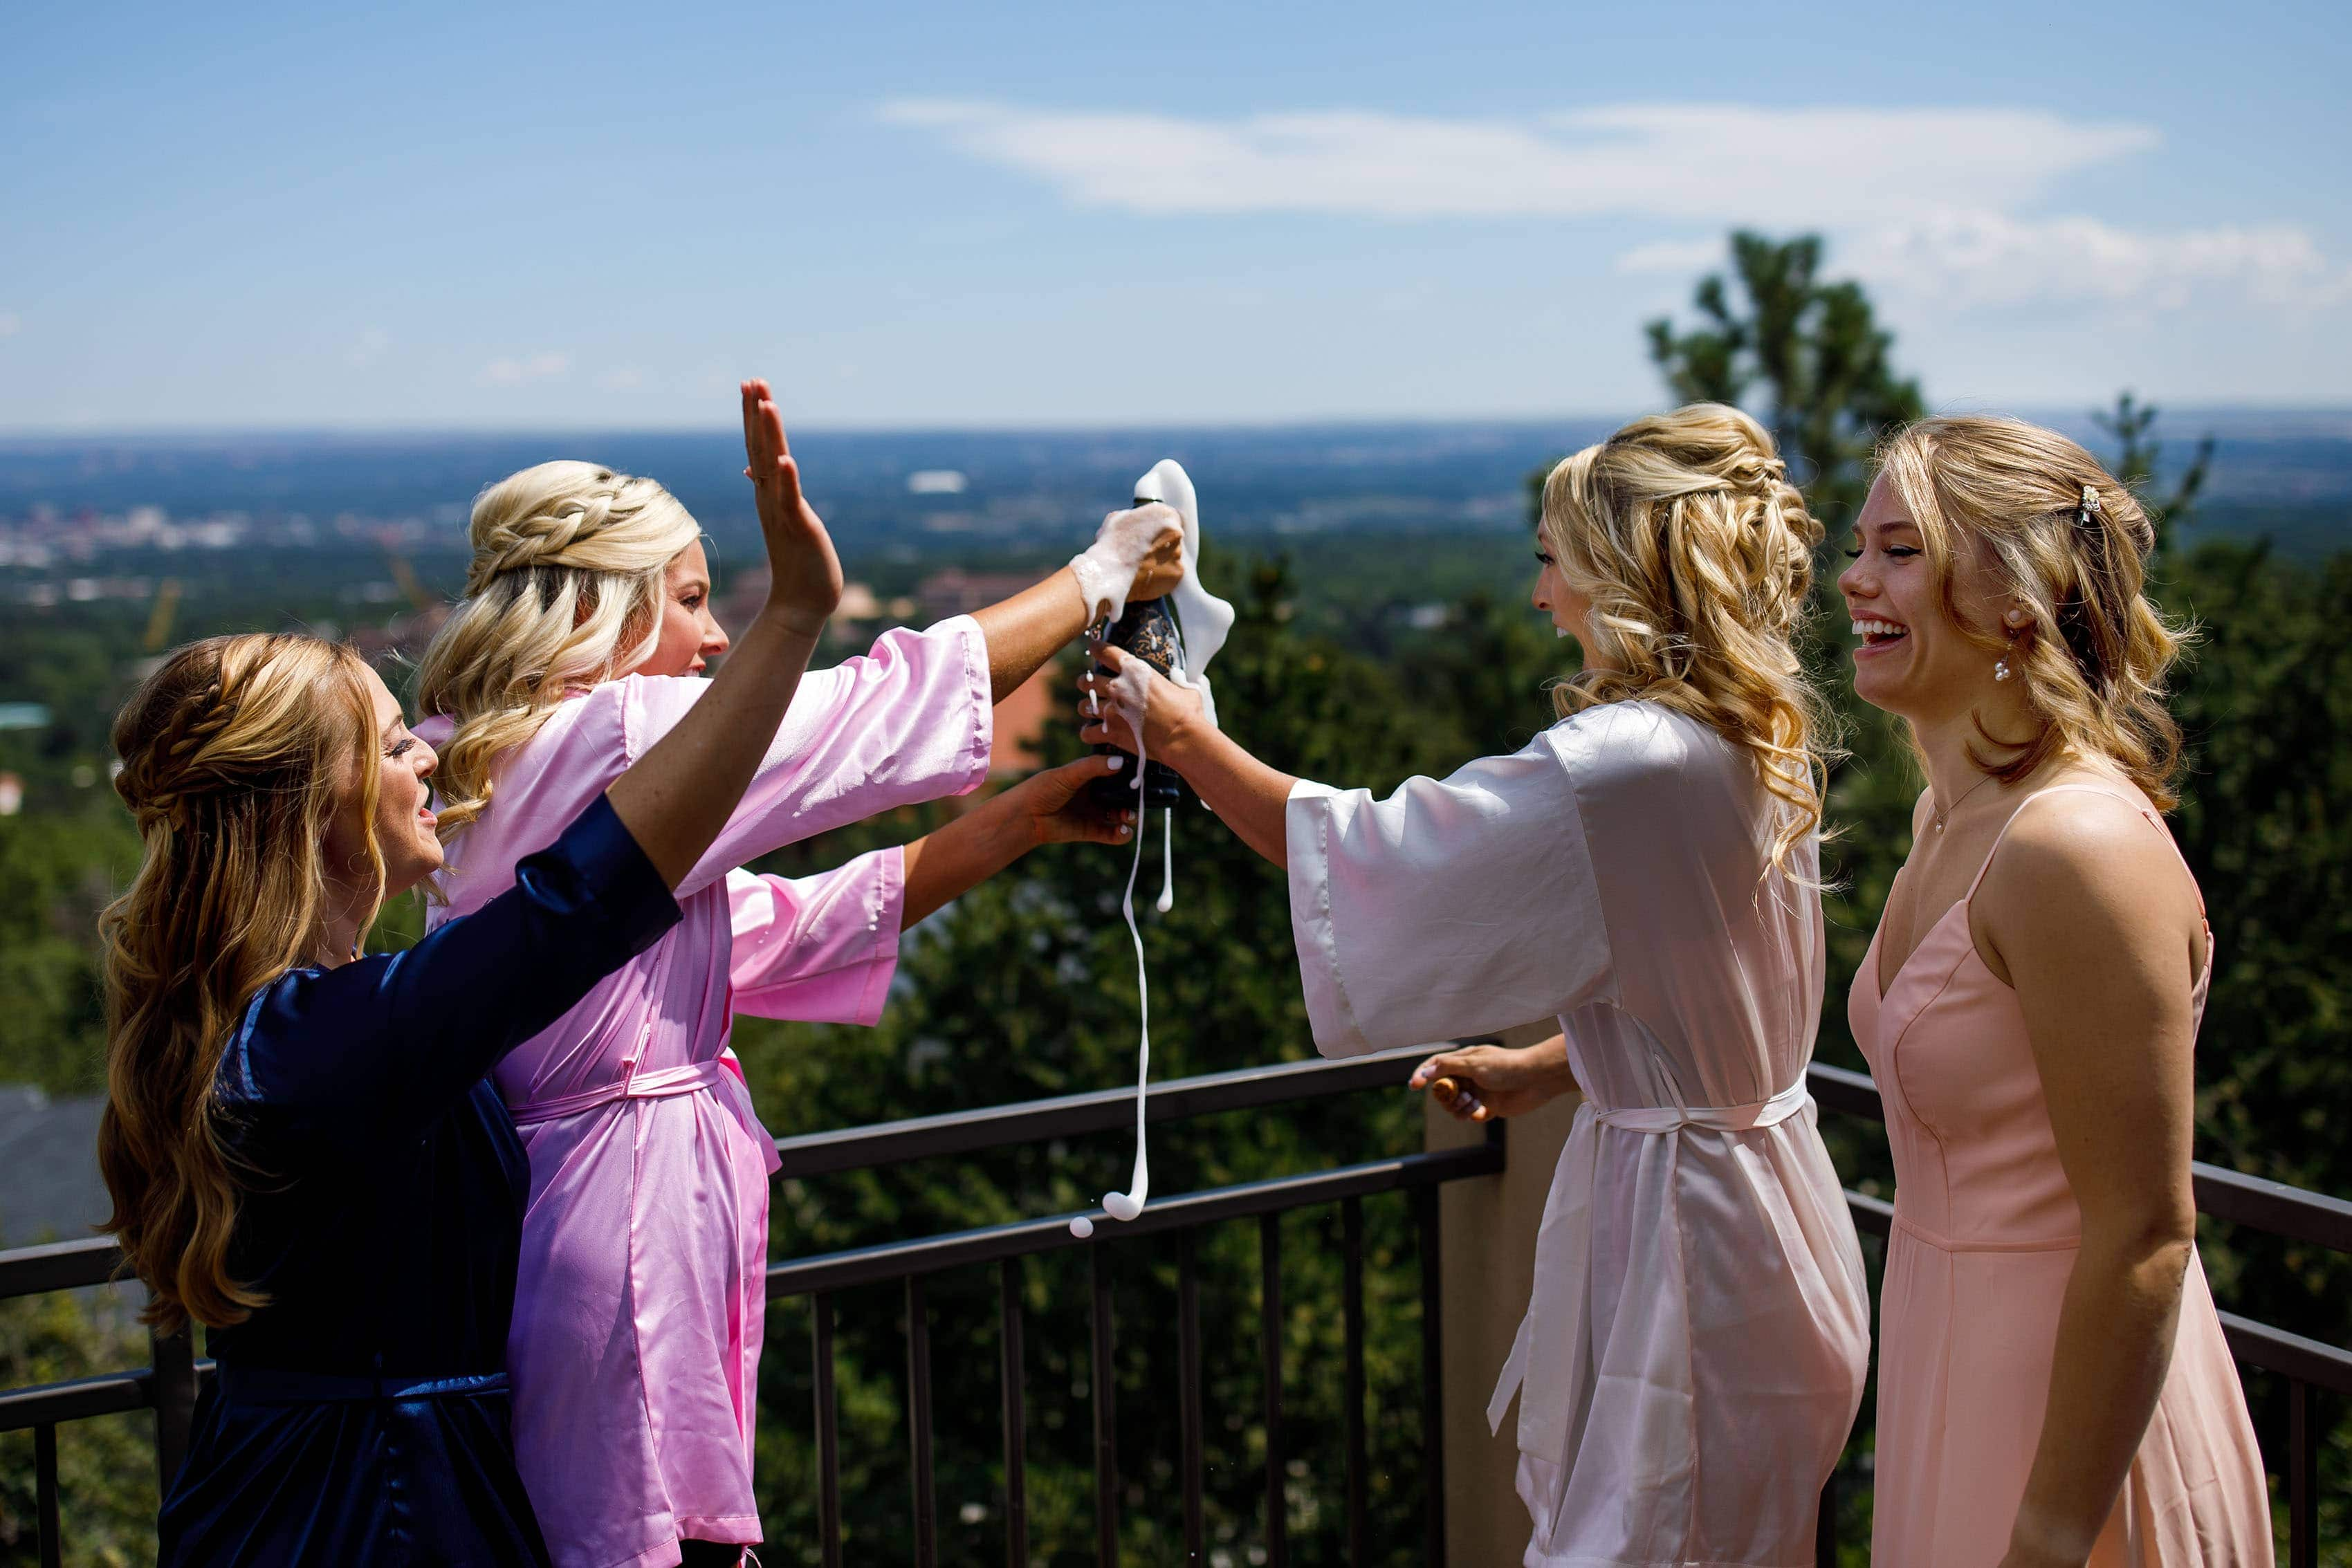 The bride and bridesmaids pop a bottle of champagne